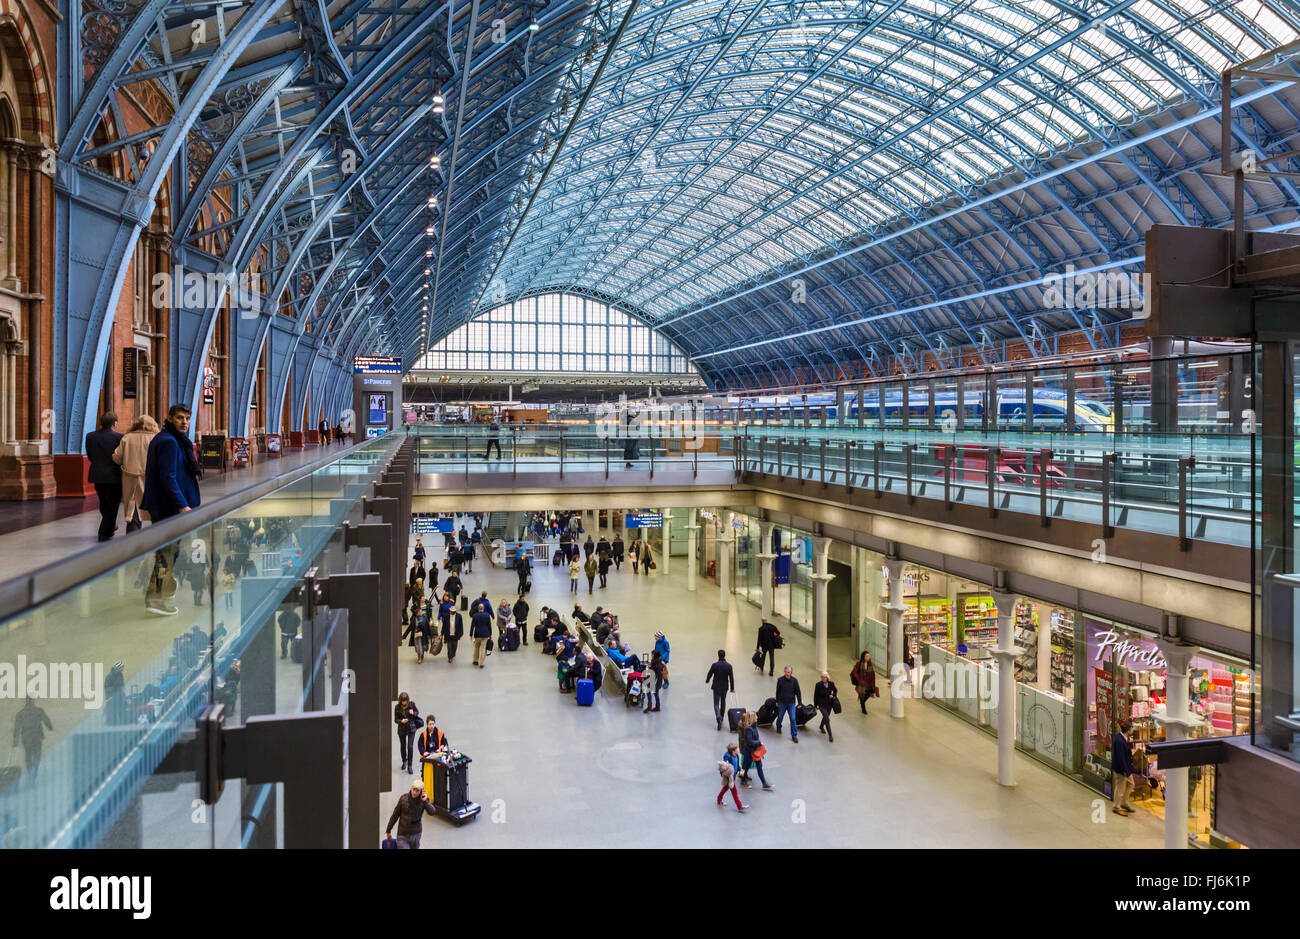 St Pancras International railway station, London, England, UK Stock Photo